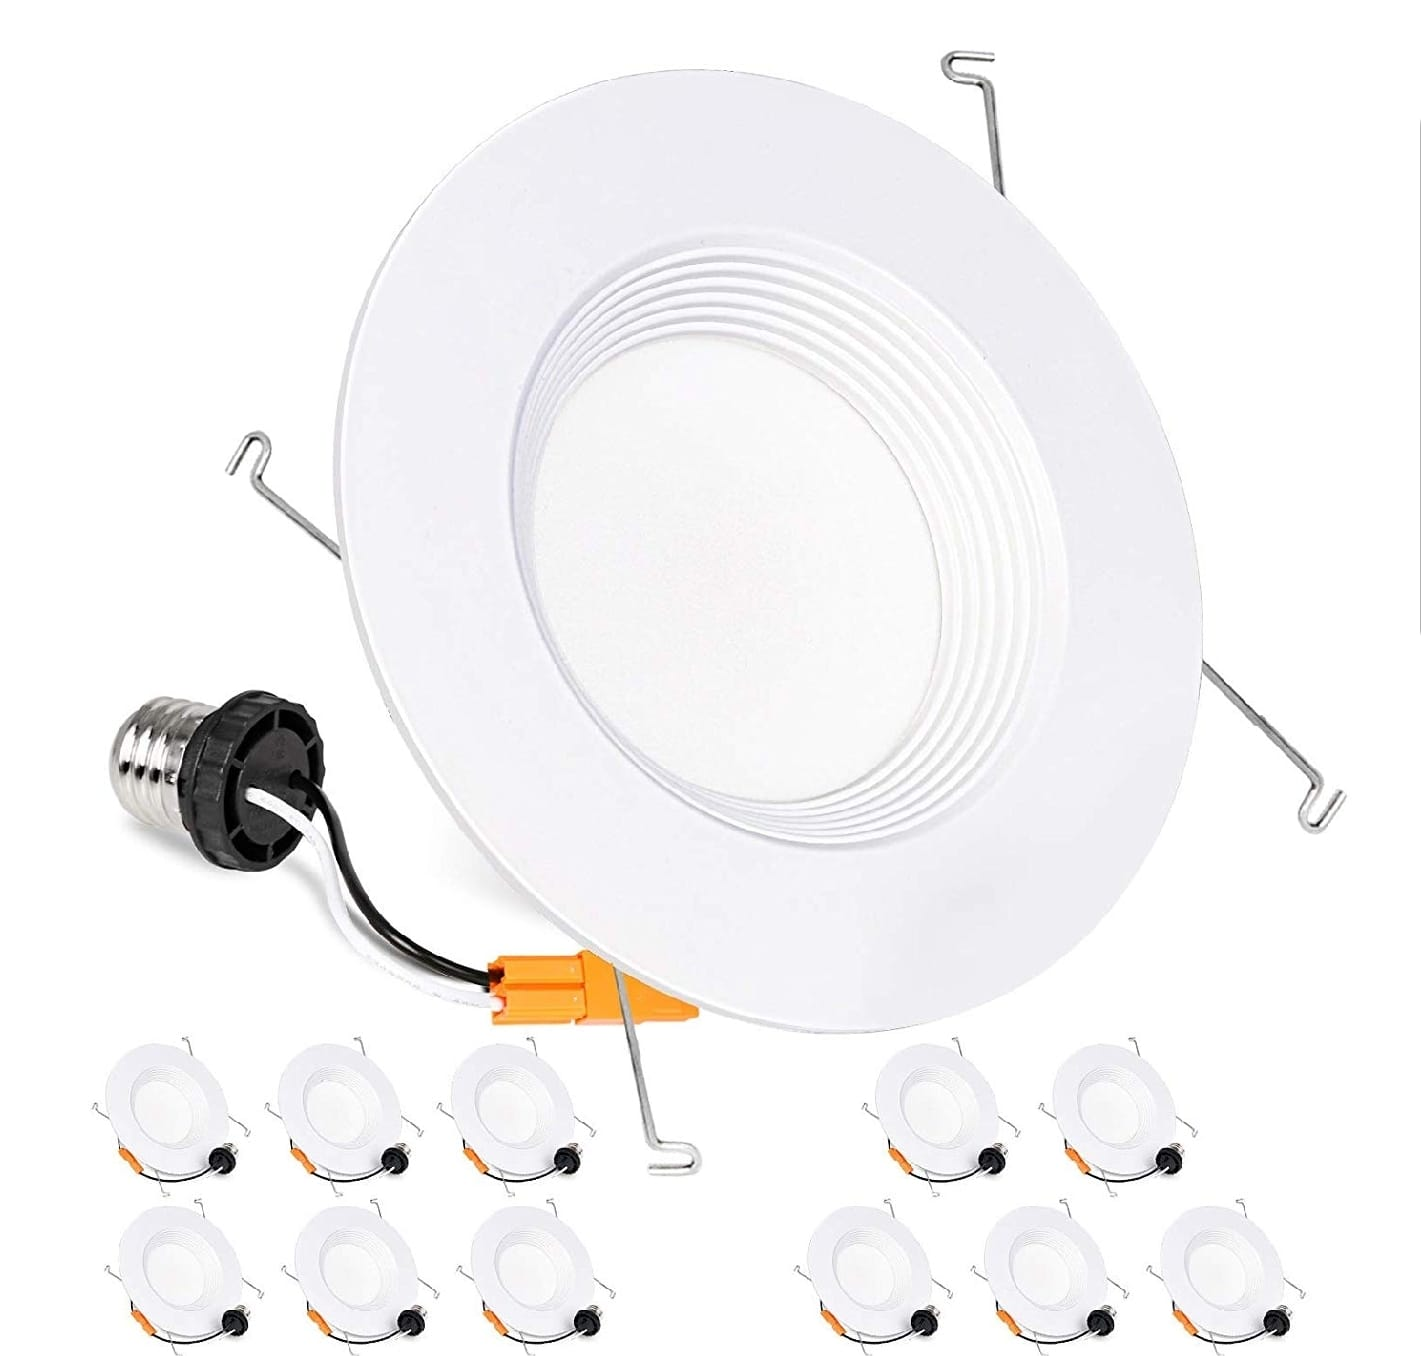 """Hykolity 12 Pack 5/6"""" Dimmable LED Recessed Downlight 3000K/4000K/5000K  $46.79 + Free Shipping"""